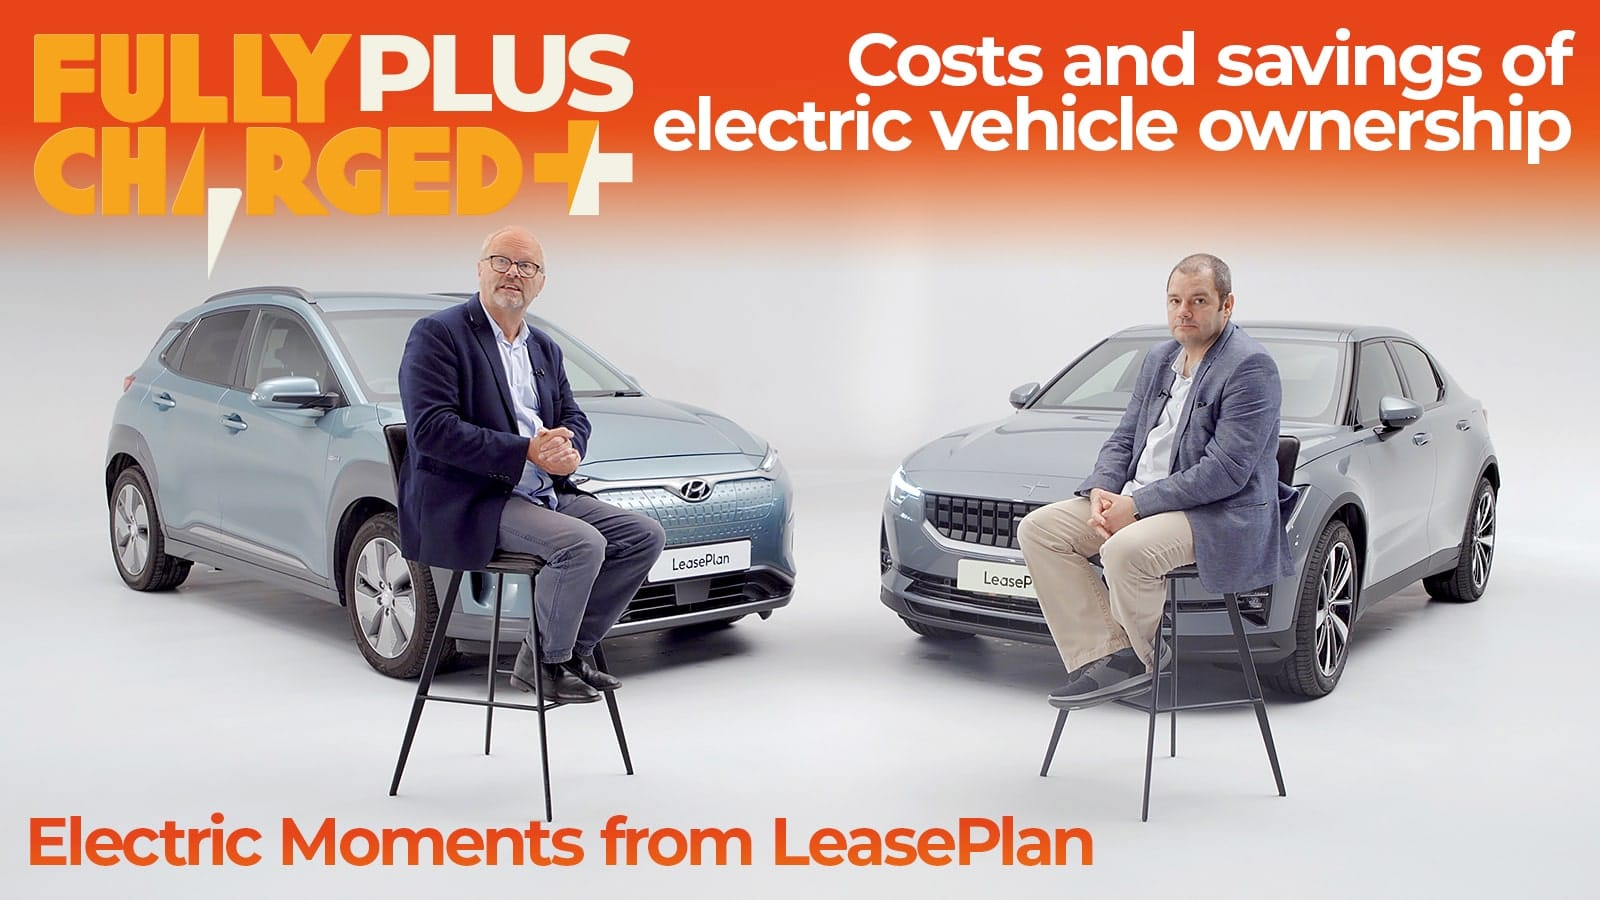 Costs and savings of electric vehicle ownership